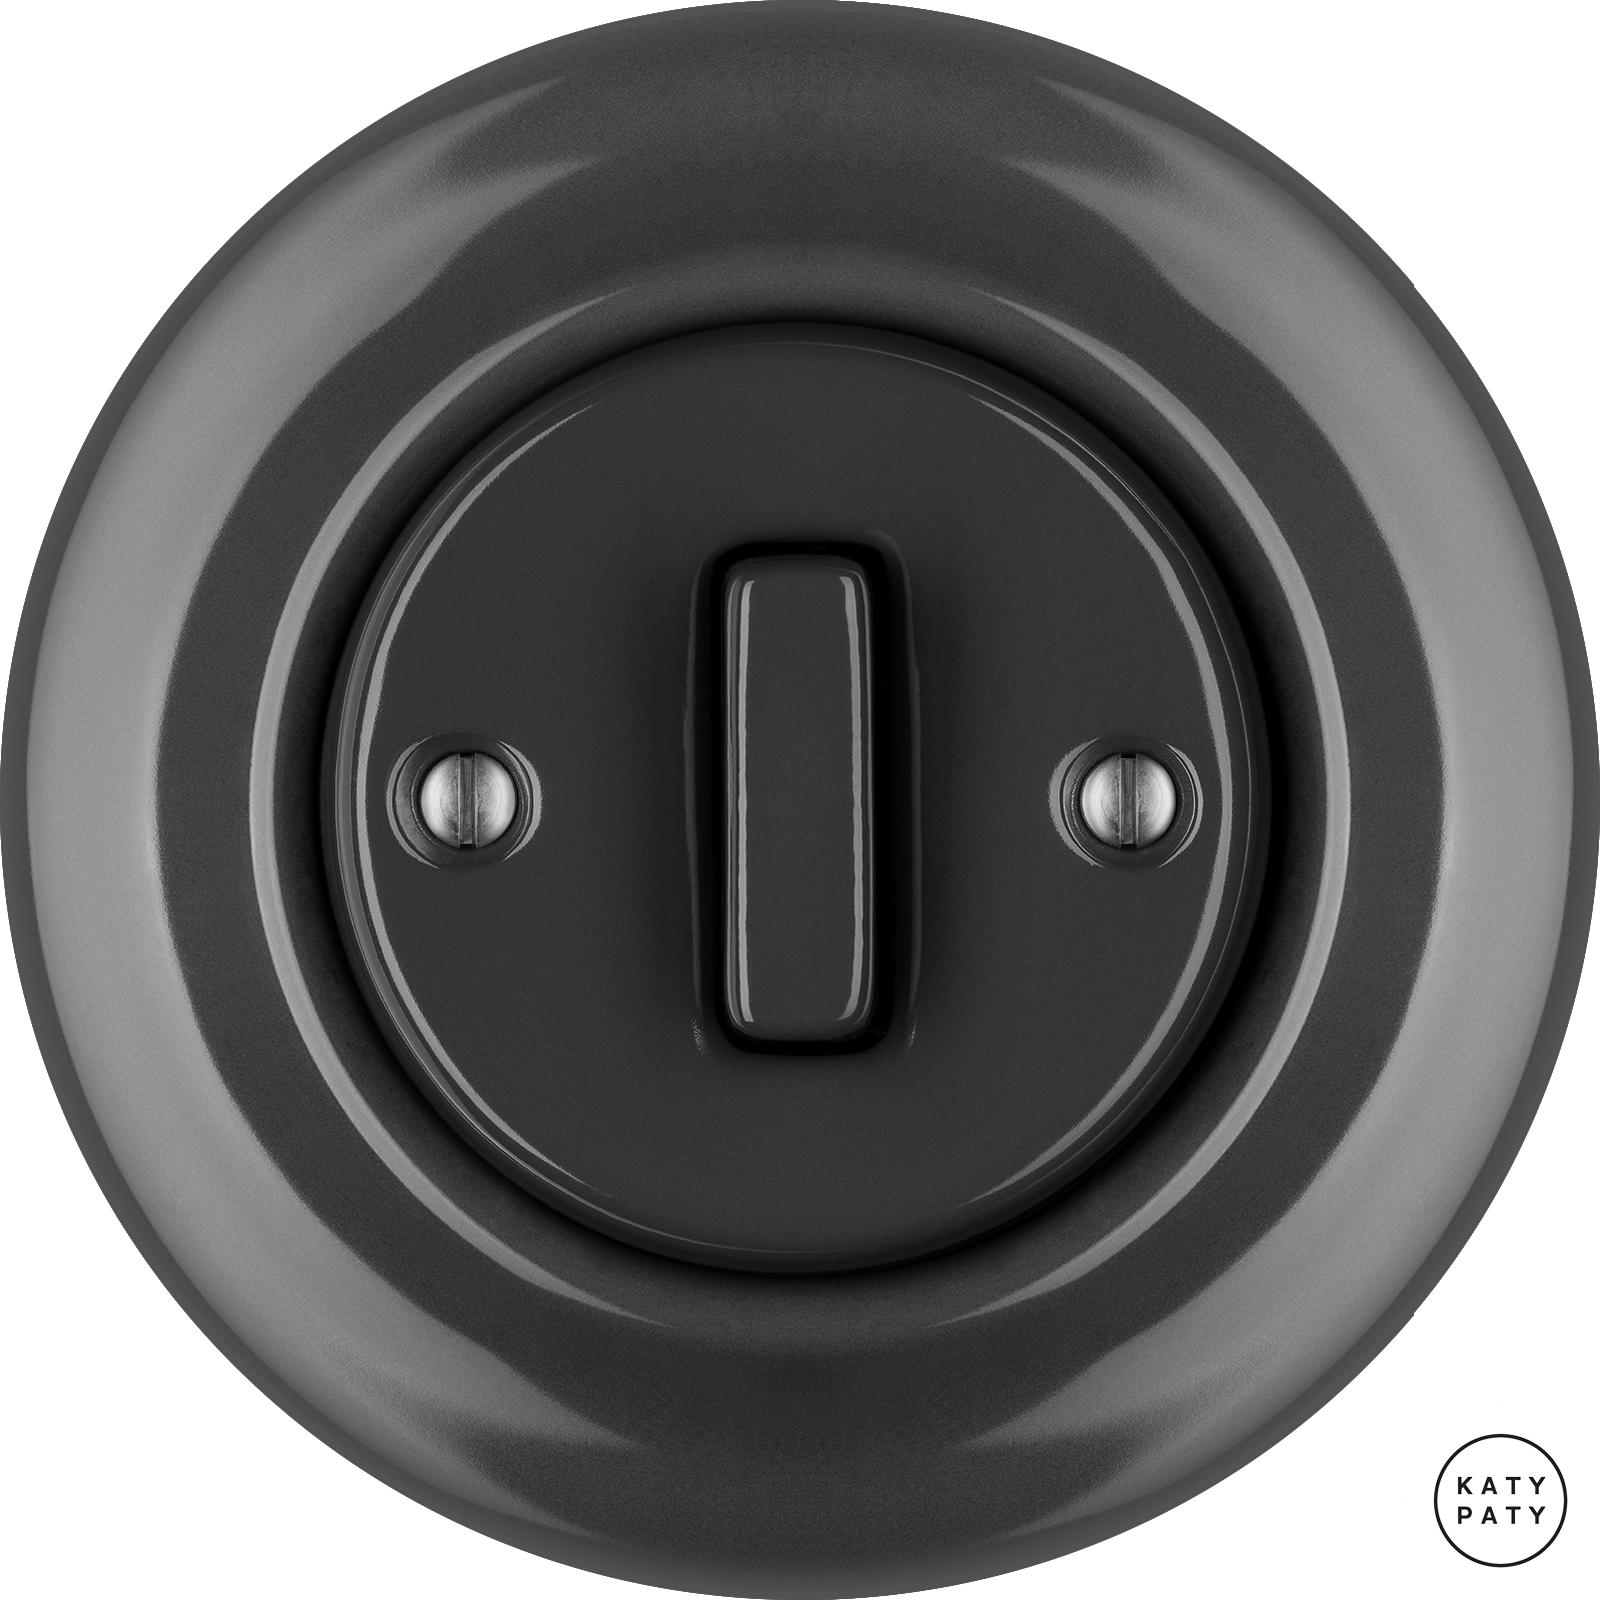 Porcelain switches - 1 gang - SLIM ()  - GRISEA | Katy Paty